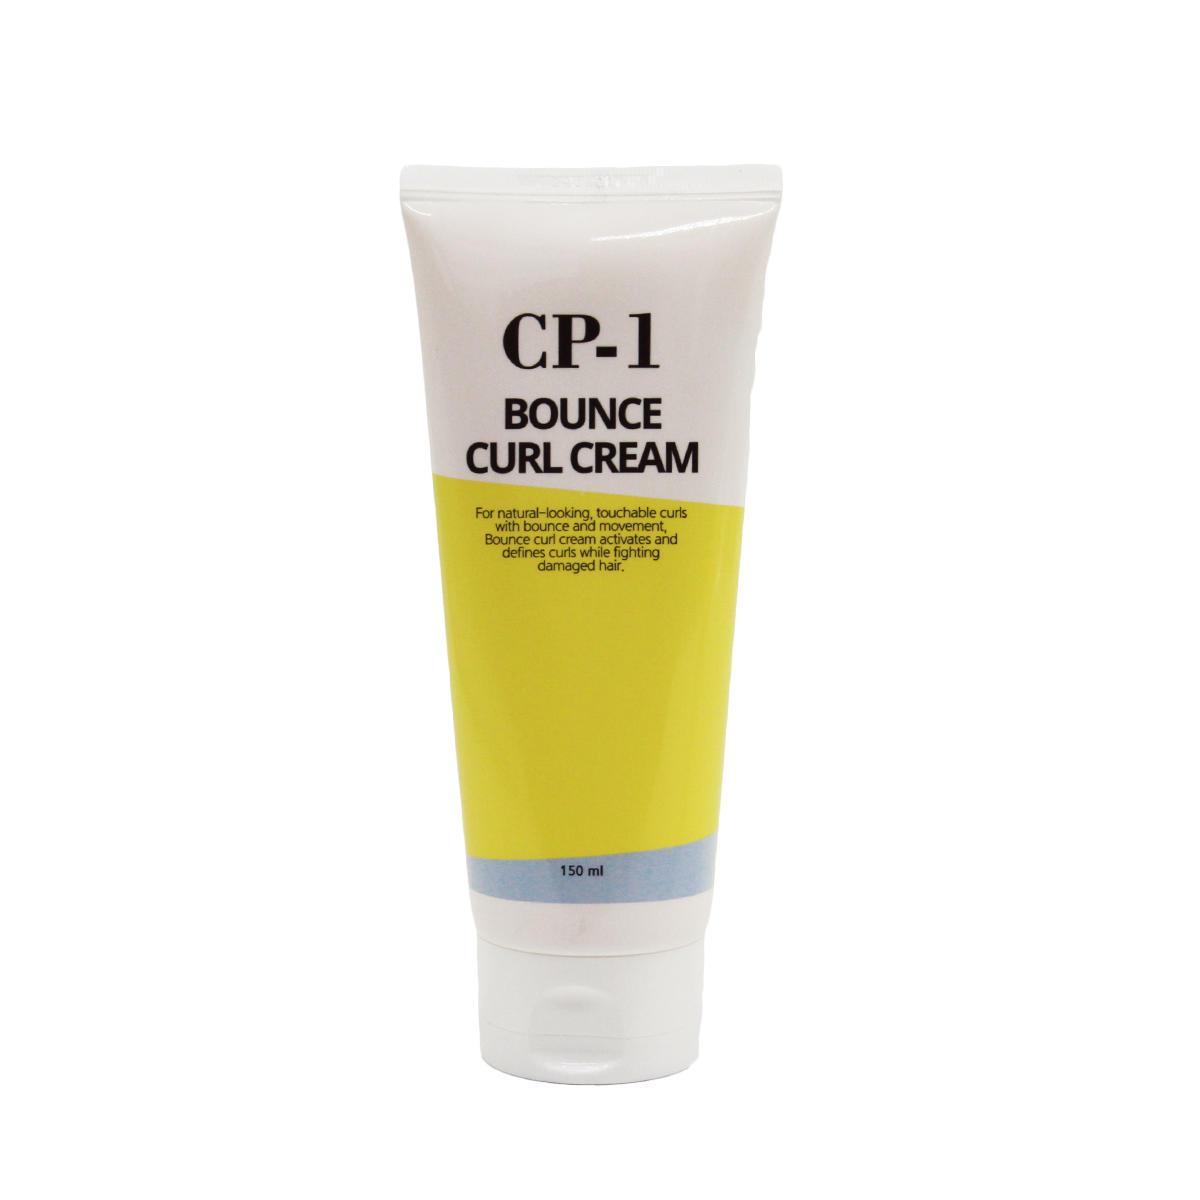 Для волос Крем для волос Esthetic House CP-1 Bounce Curl Cream, 150 мл import_files_f4_f437e5975ab311e980fb3408042974b1_f437e5985ab311e980fb3408042974b1.jpg